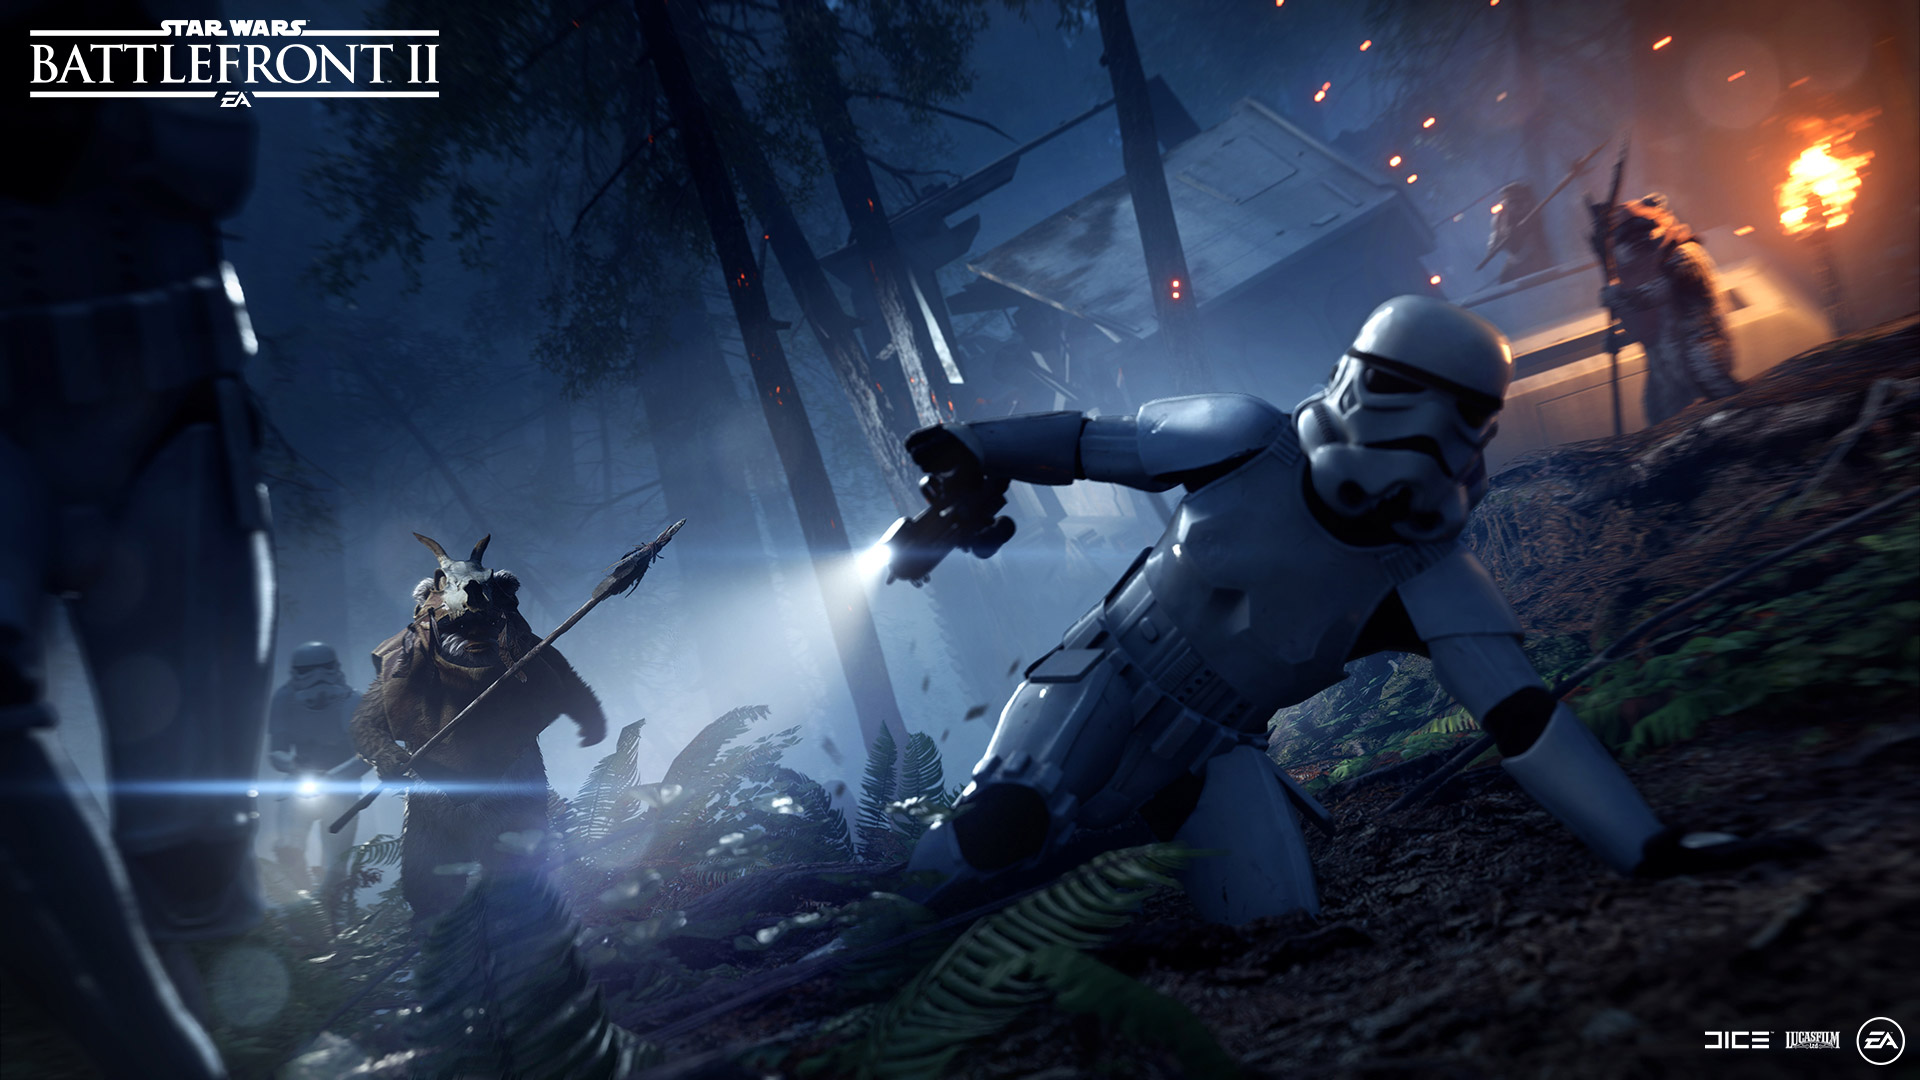 EA Confirms Battlefront II Will Start Selling Premium In-Game Currency Again